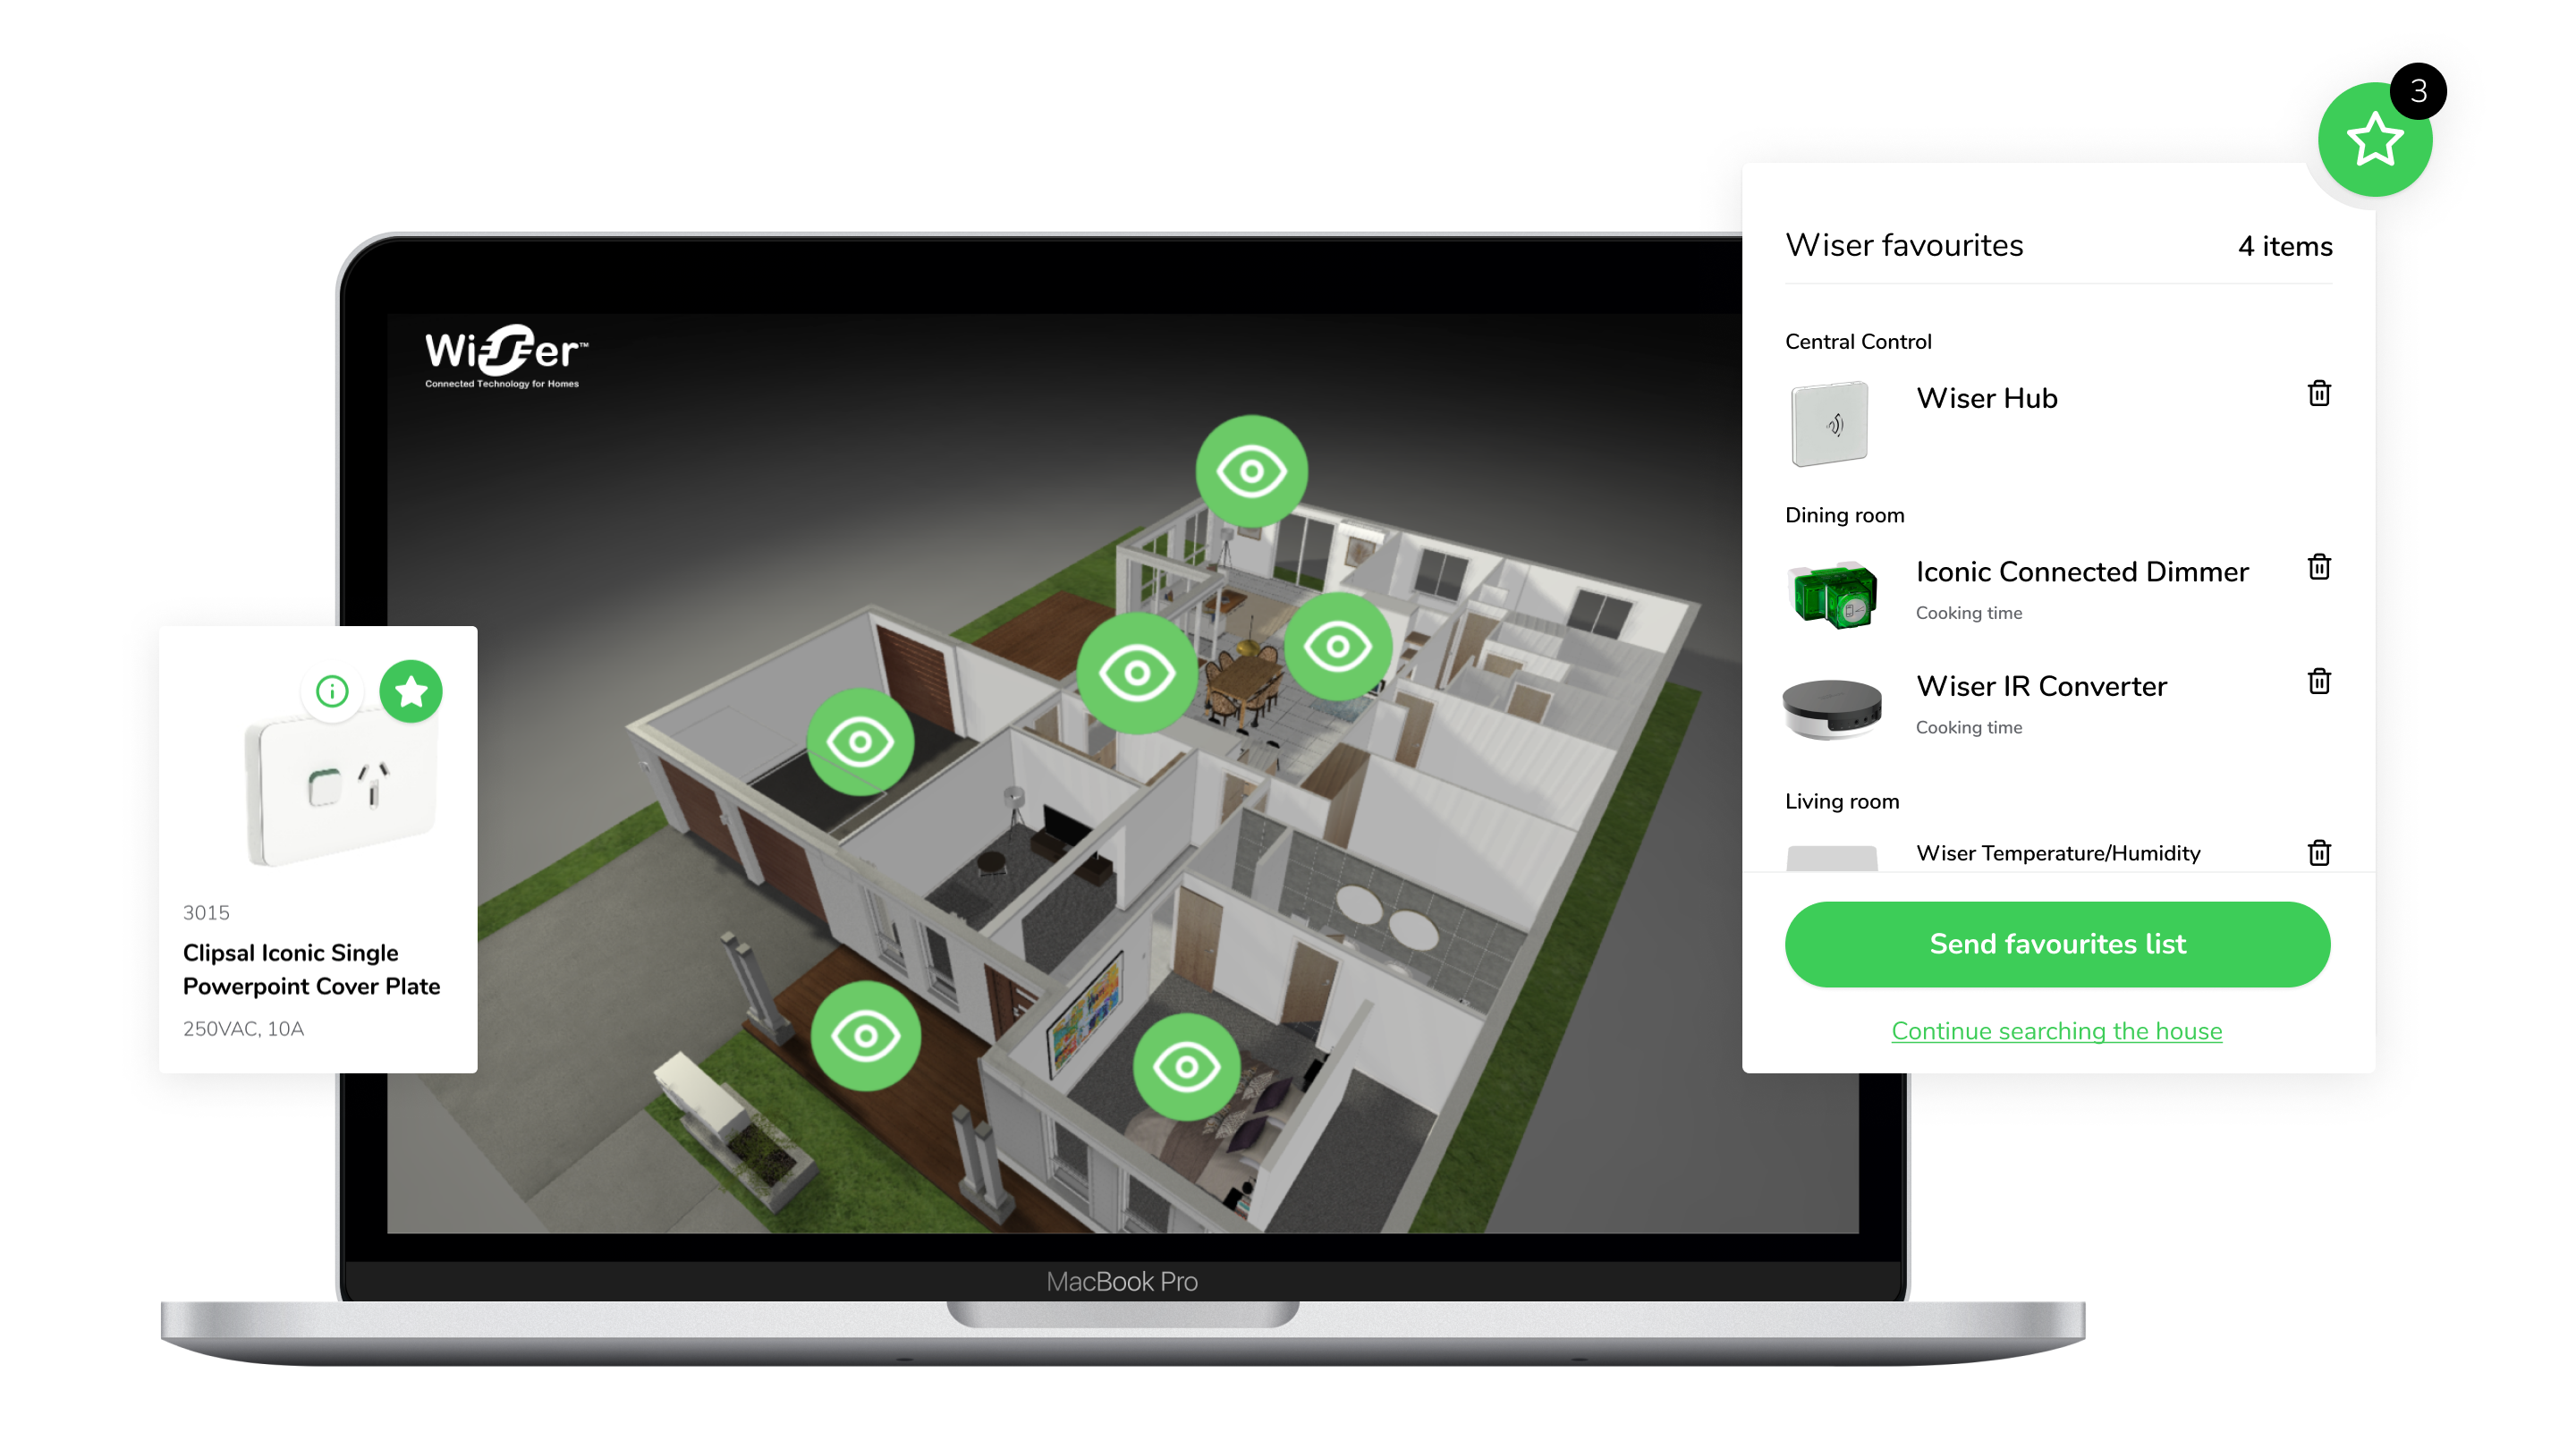 Smart Home favourites feature